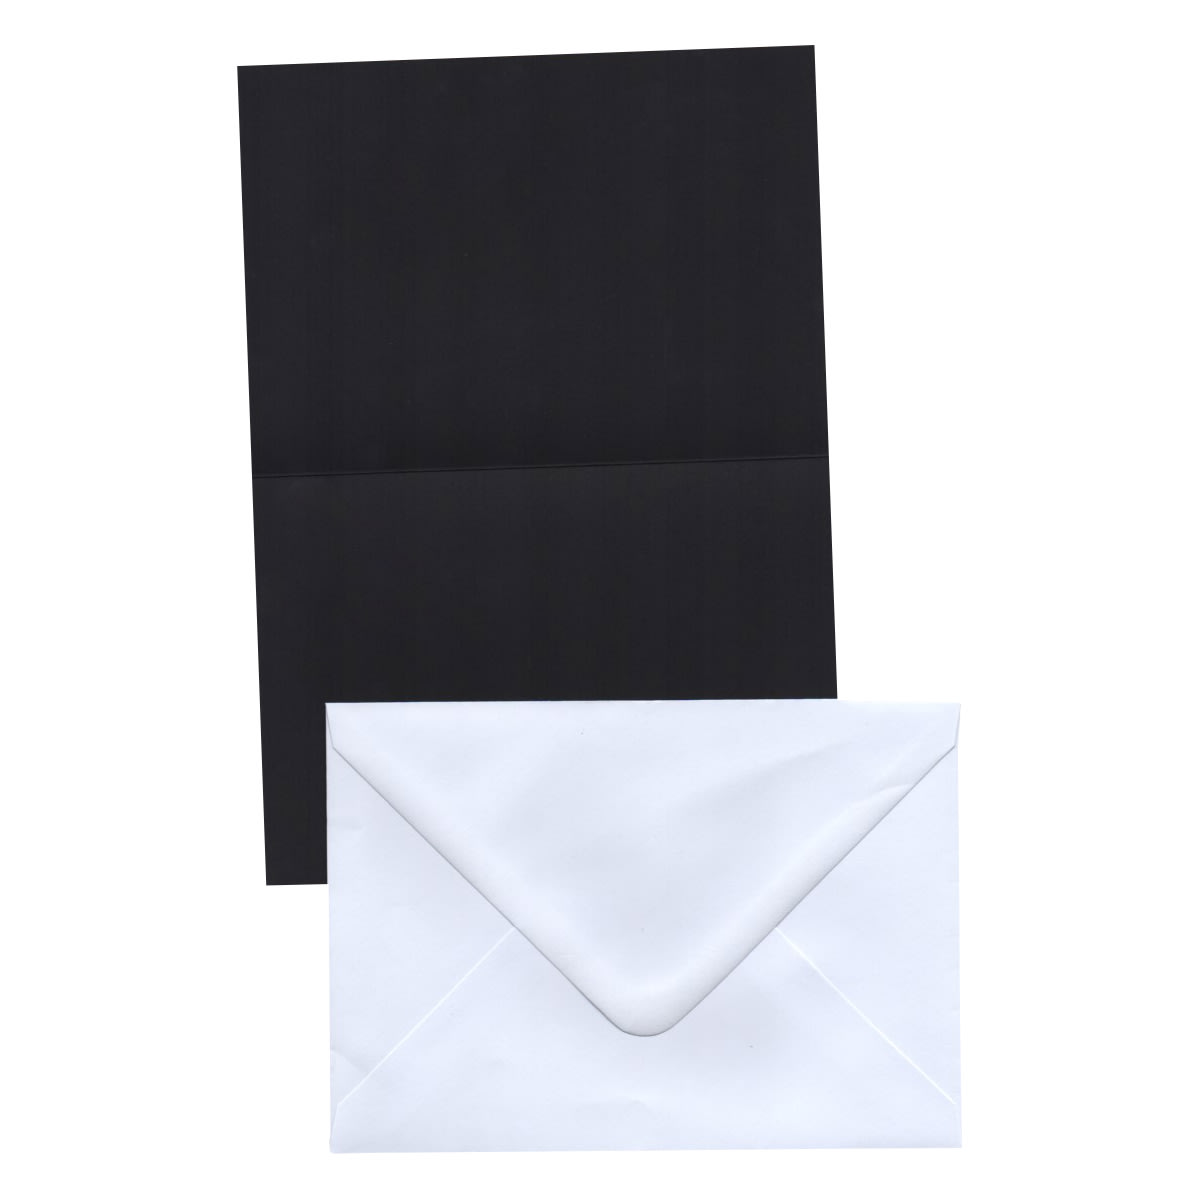 A6 BLACK CARD BLANKS & WHITE ENVELOPES (PACK OF 20)